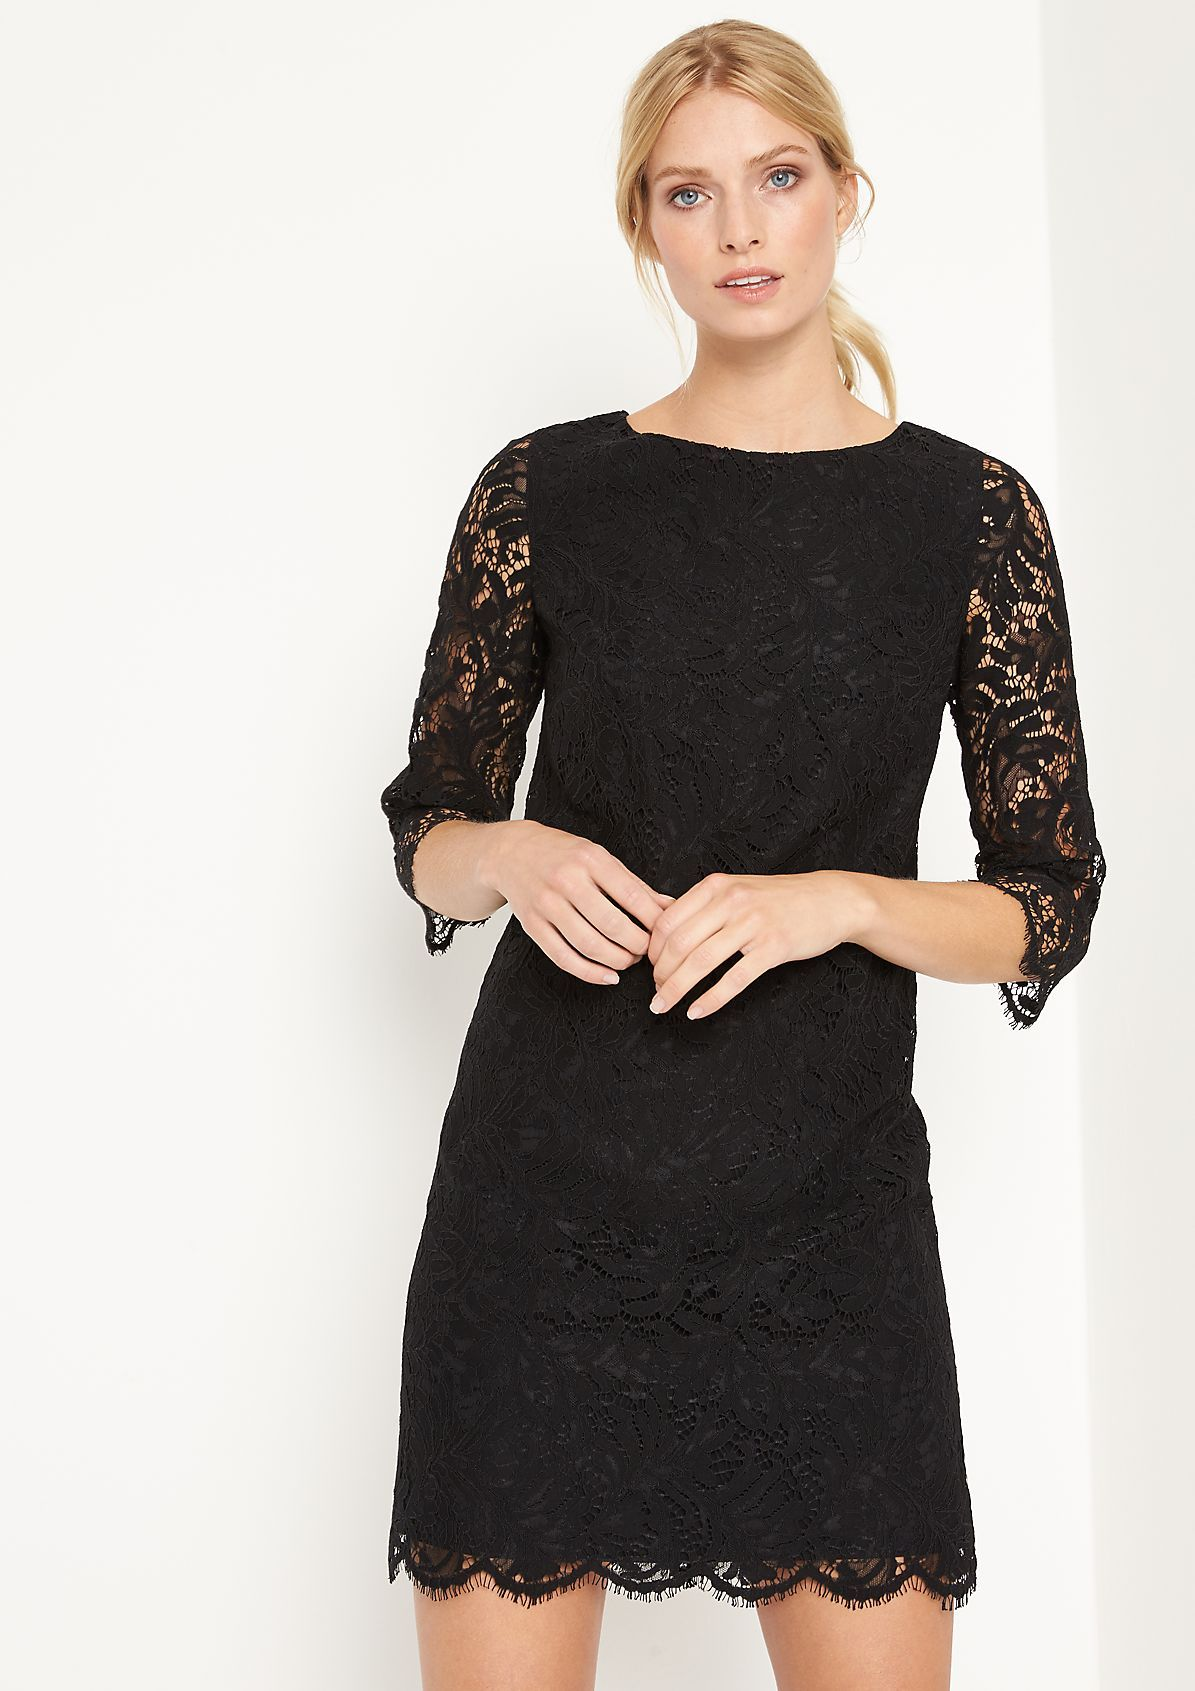 commafashion | highlight dress - the must-have for every